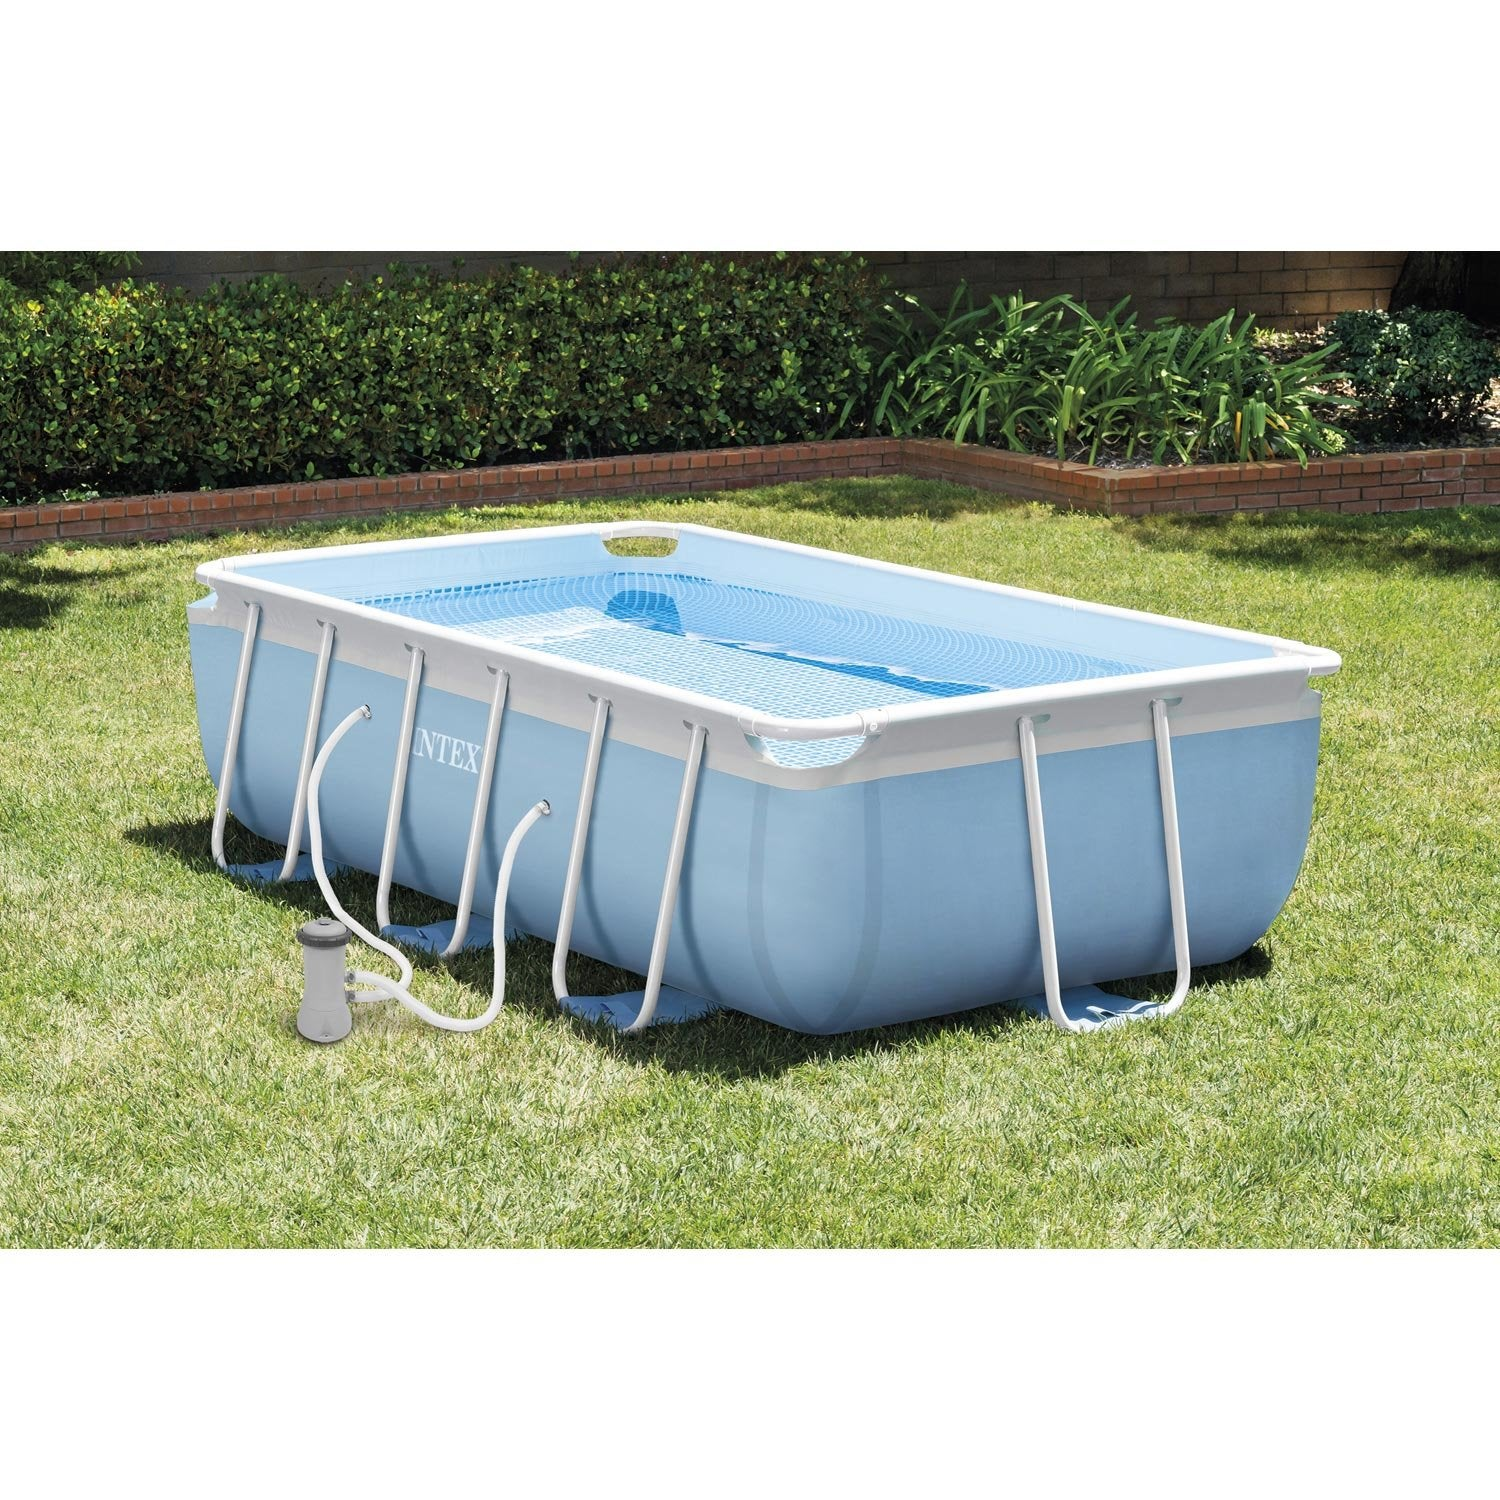 Piscine hors sol autoportante tubulaire intex l 3 4 x l 2 for Piscine sur sol